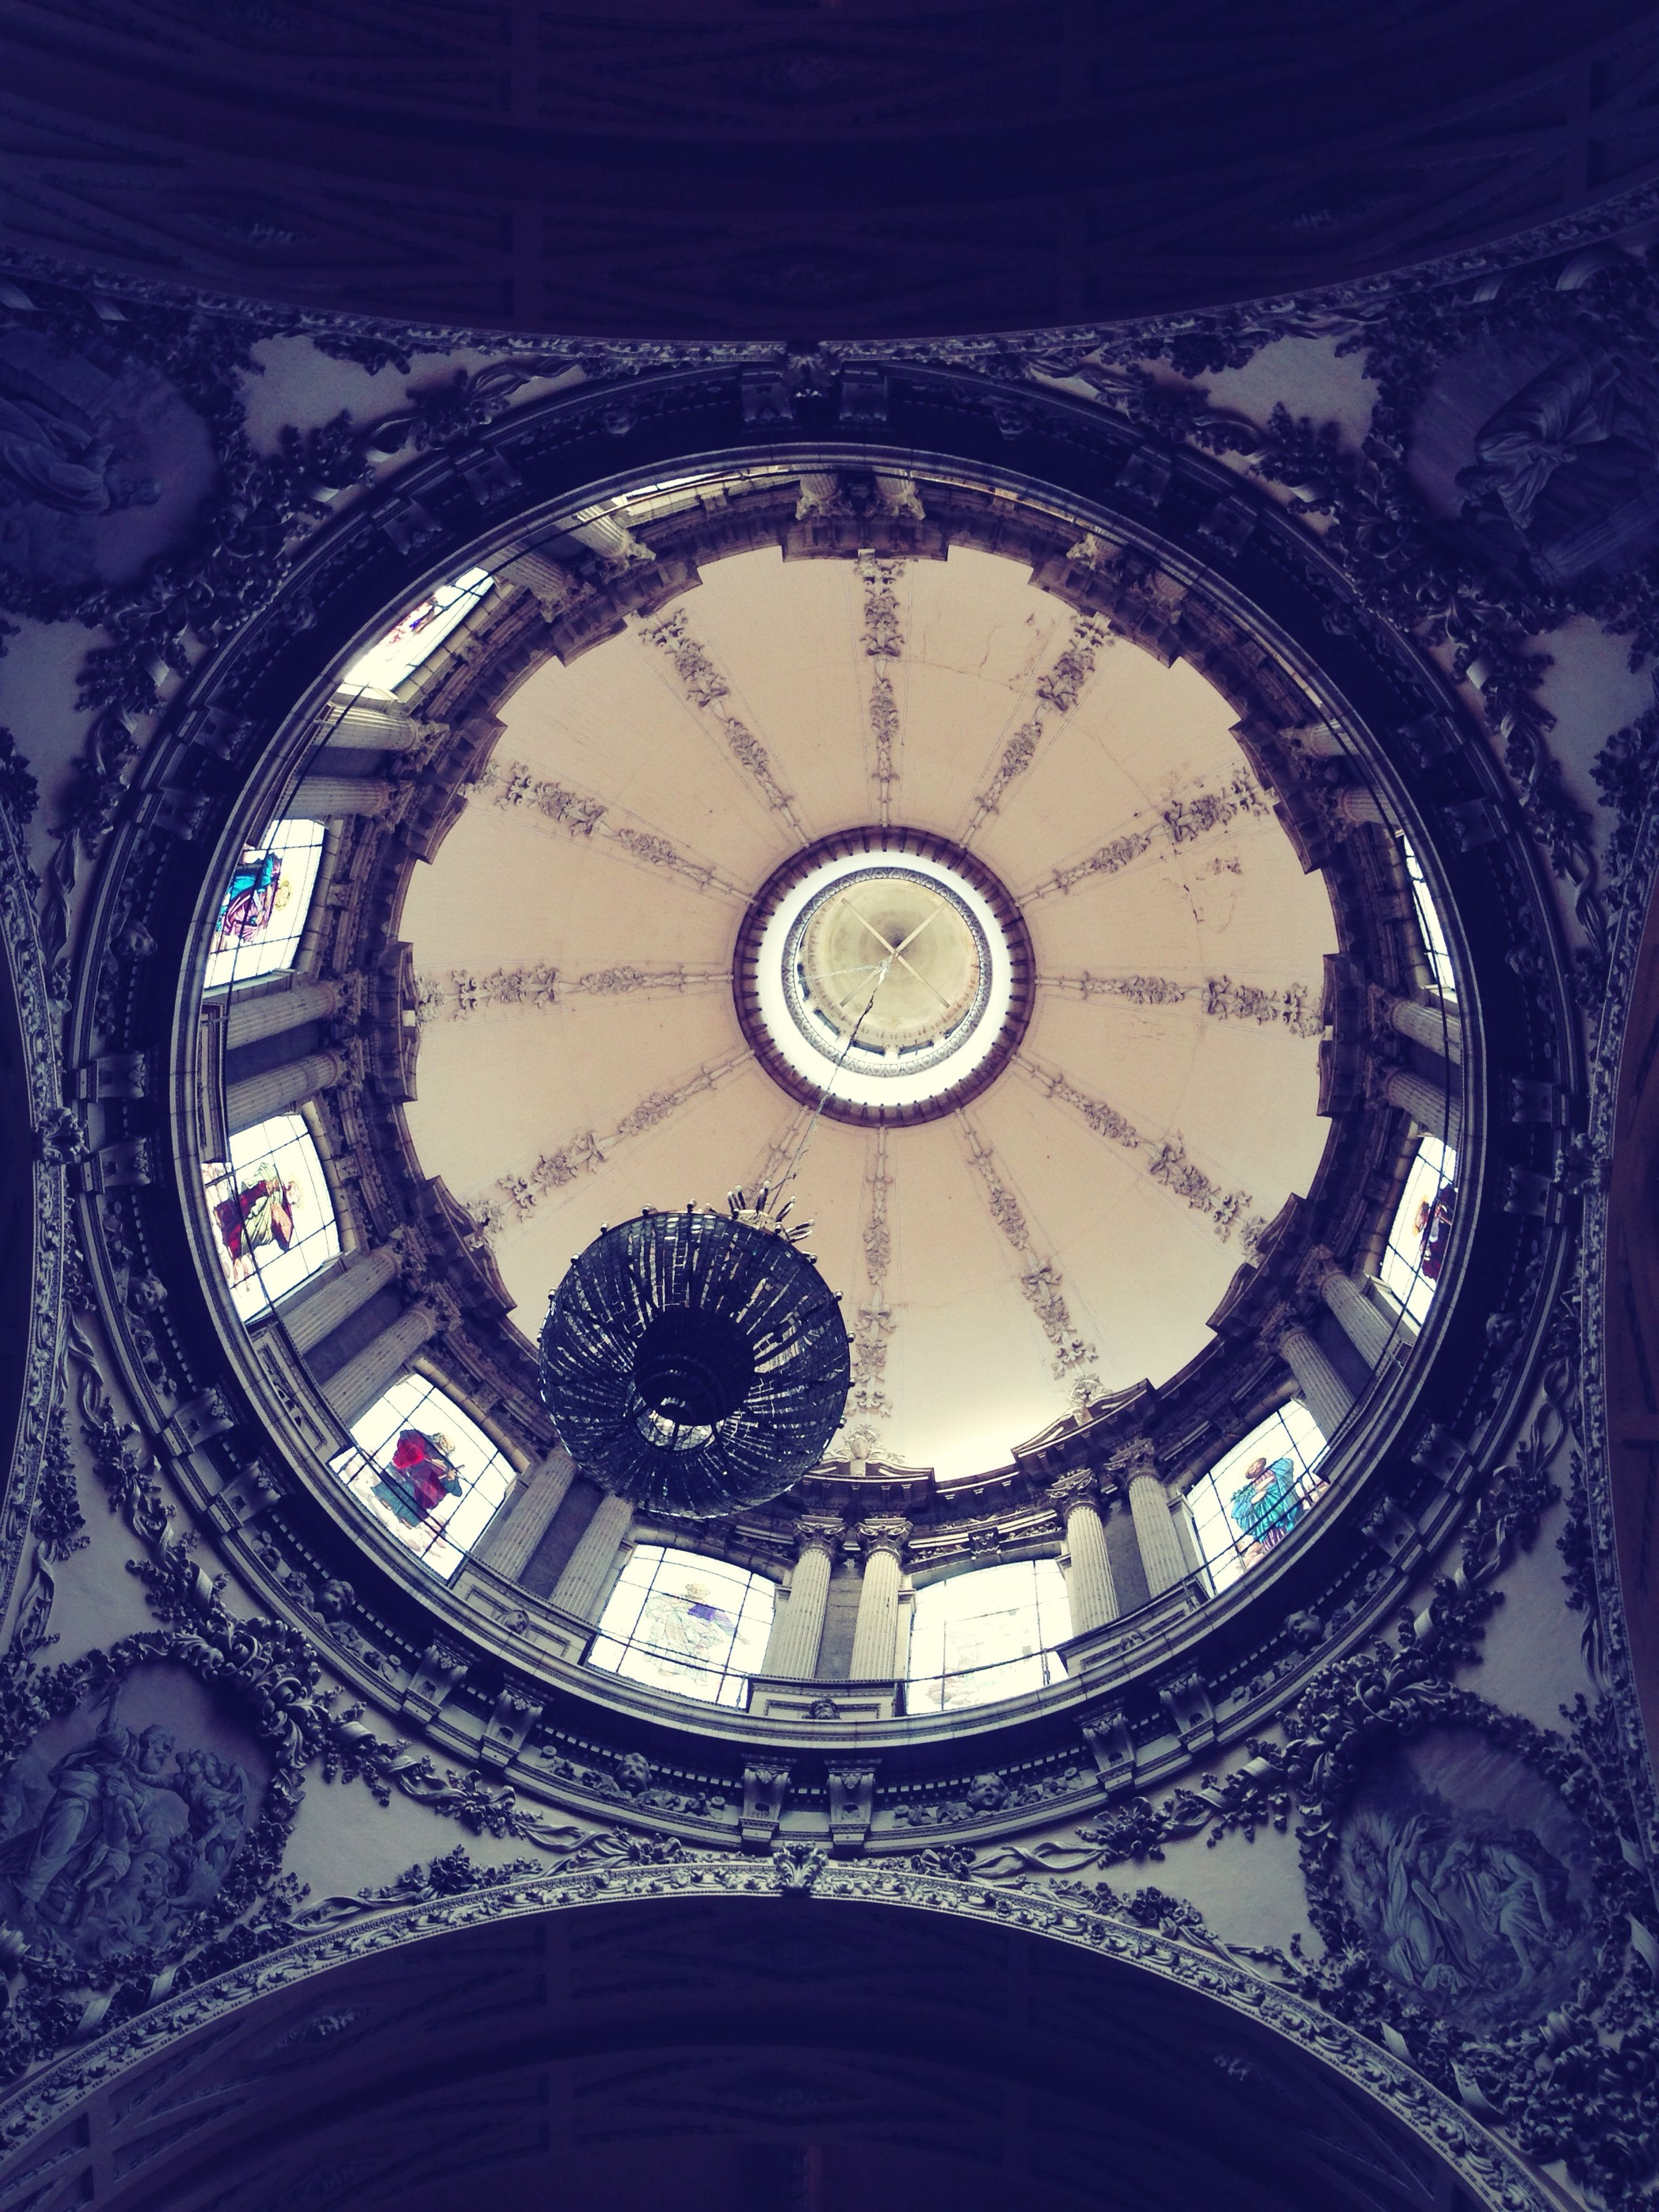 indoors, clock, circle, time, architecture, built structure, low angle view, ceiling, directly below, clock face, geometric shape, design, pattern, ornate, roman numeral, no people, architectural feature, history, skylight, church